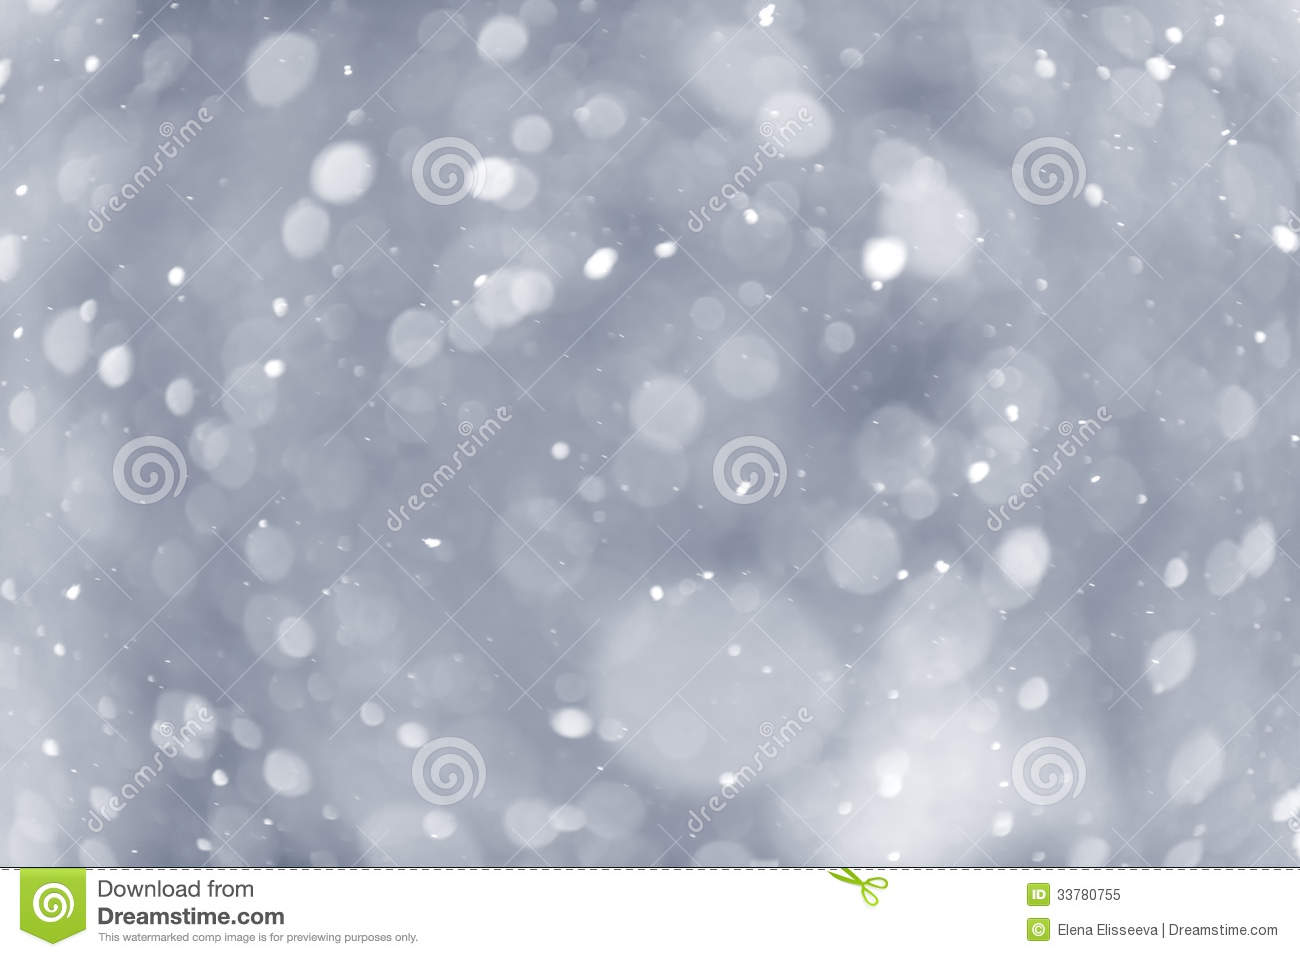 Free Download Of Christmas Wallpaper With Snow Falling Snowfall Background Royalty Free Stock Photo Image 33780755